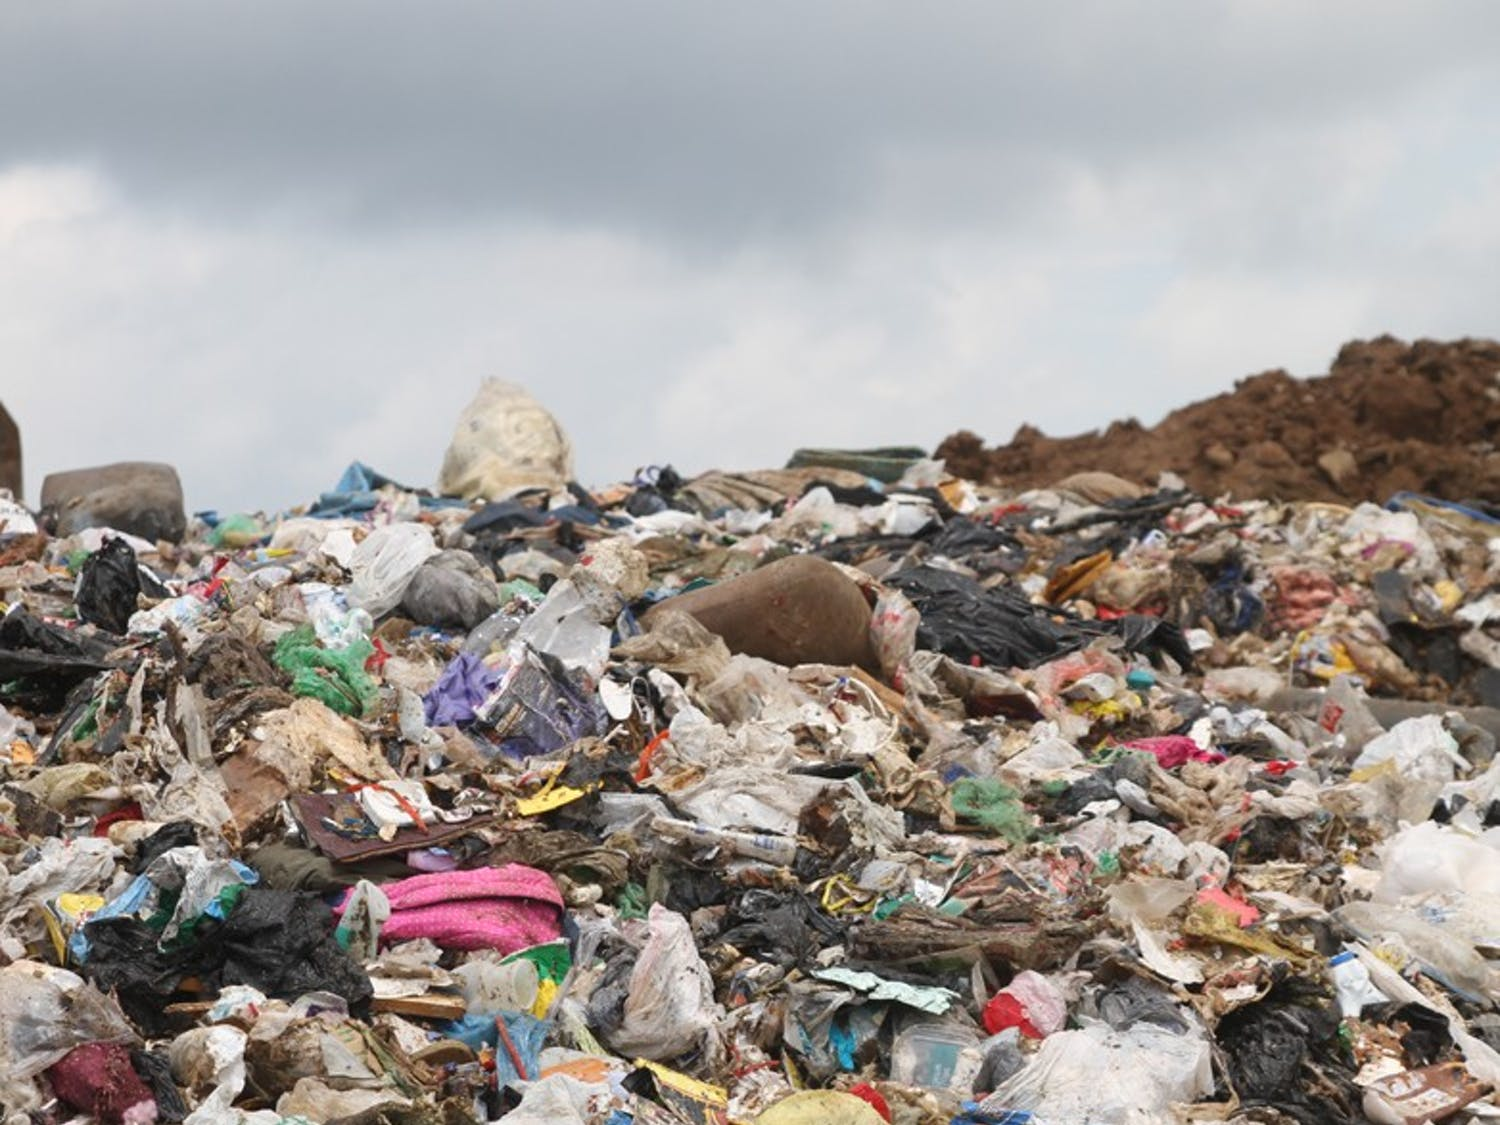 The Orange County landfill will be closing on Saturday, June 29 after 10 years of usage.